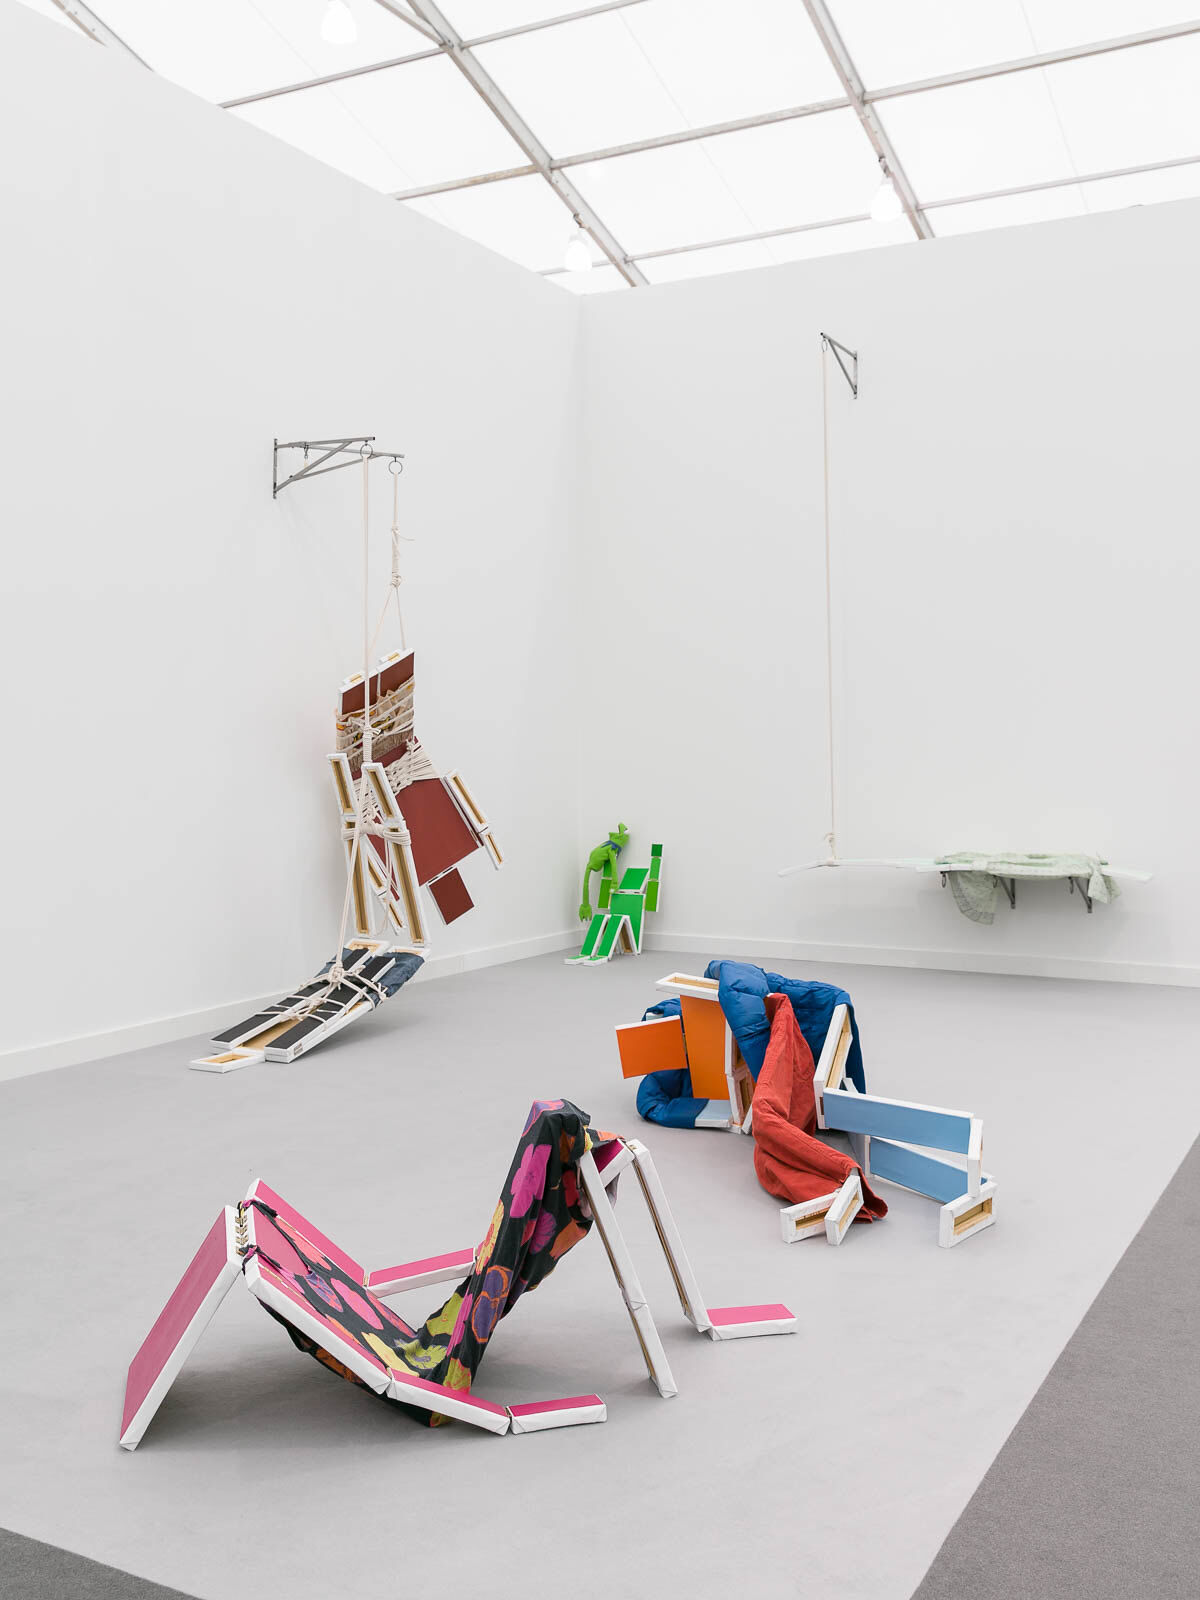 Installation view of Isla Flotante's booth at Frieze New York, 2019. Photo by Mark Blower. Courtesy of Mark Blower/Frieze.